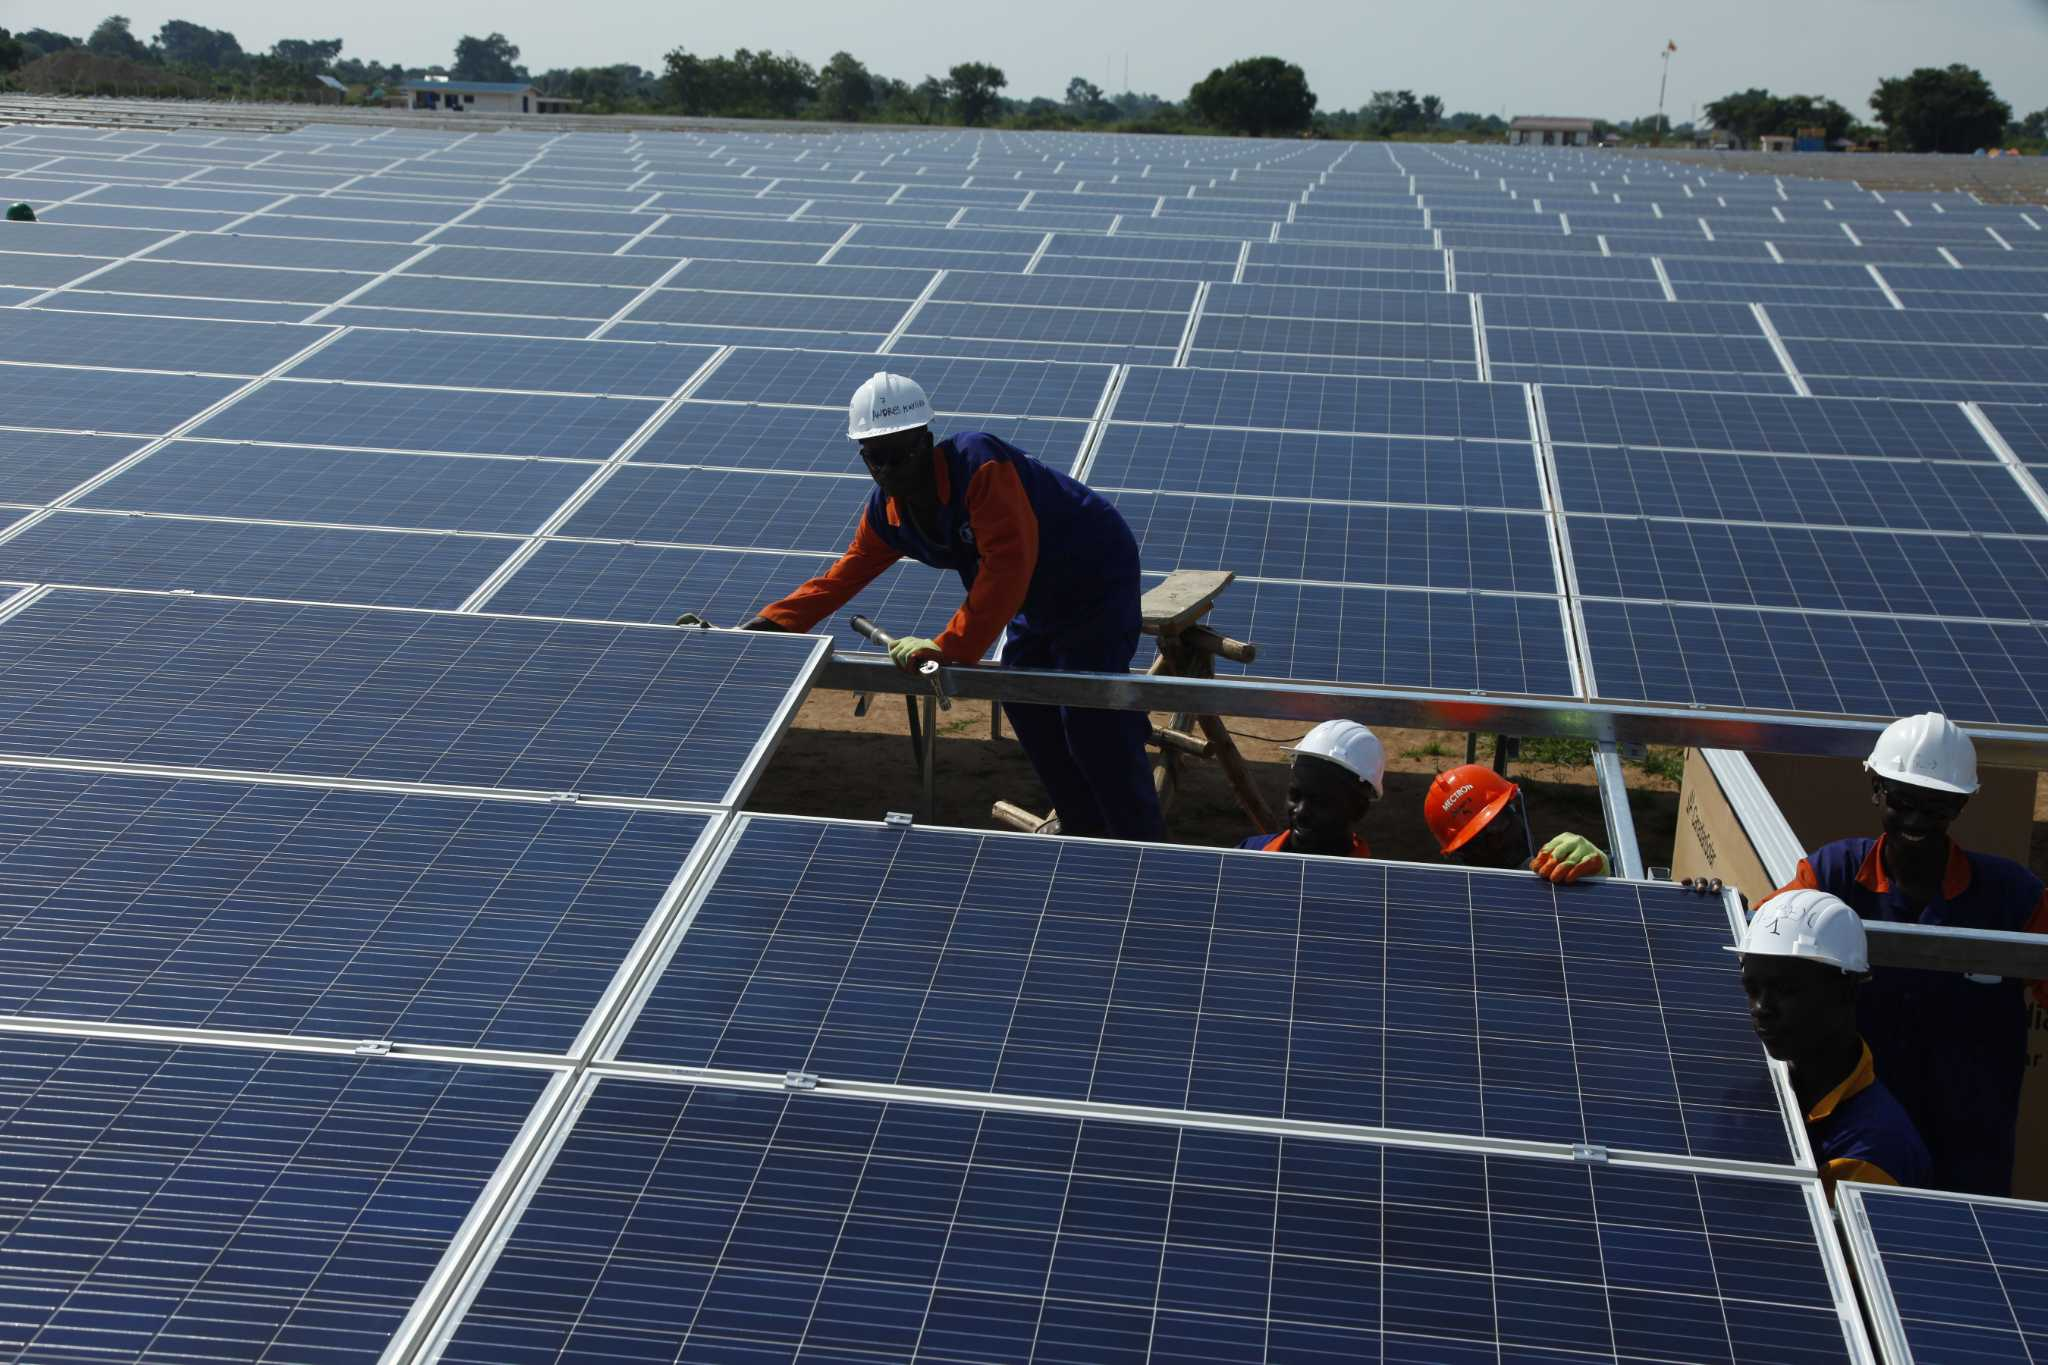 Texas A&M wins Energy grant to build power grid in India